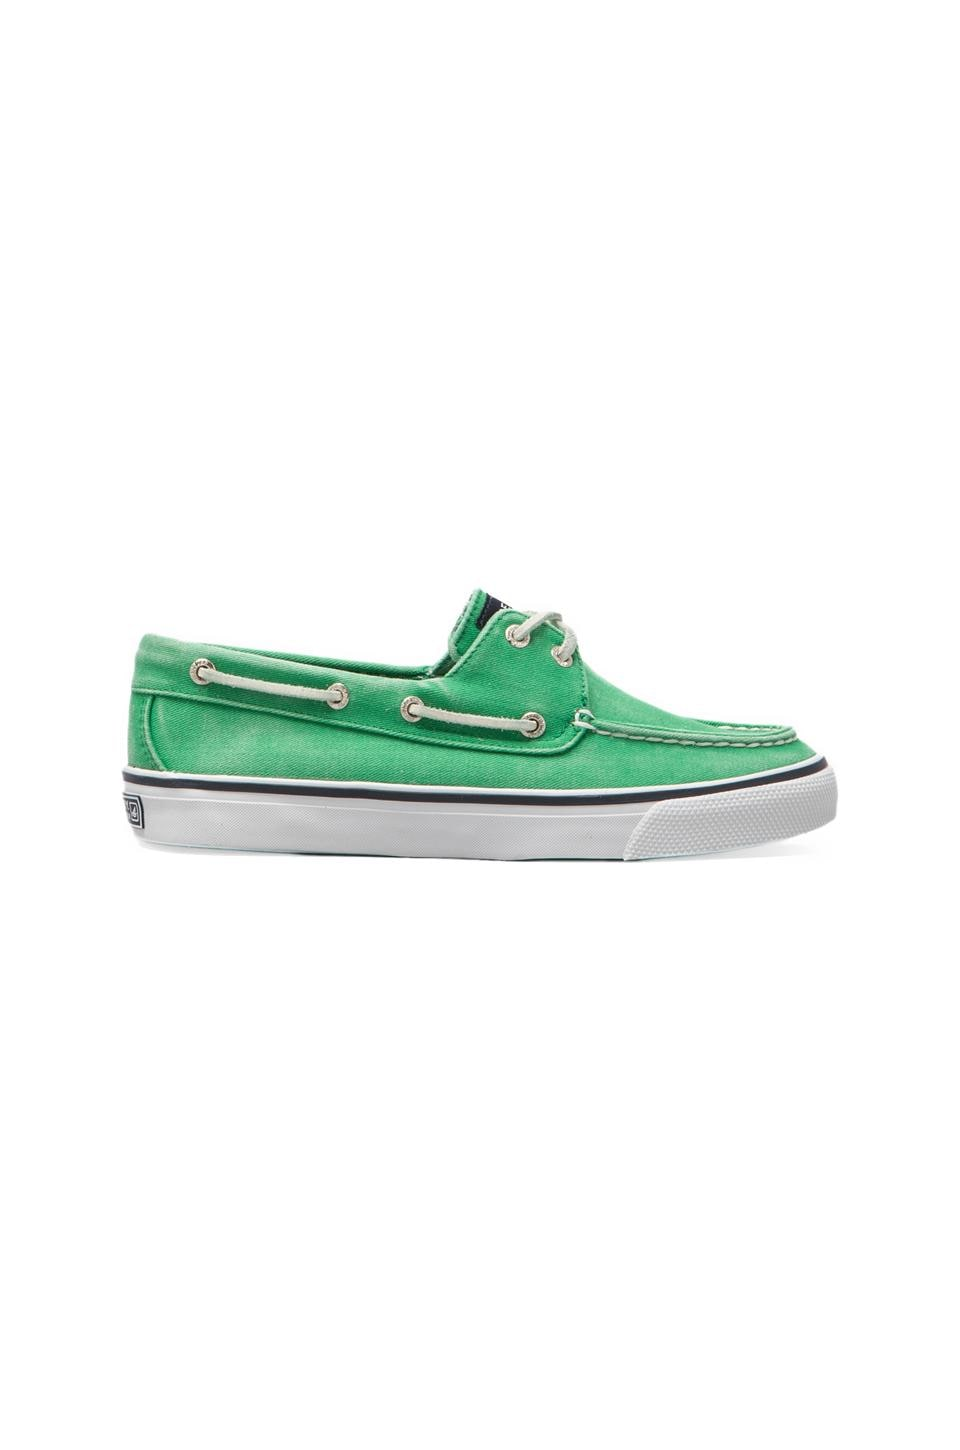 Sperry Top-Sider Bahama 2-Eye in Green Canvas